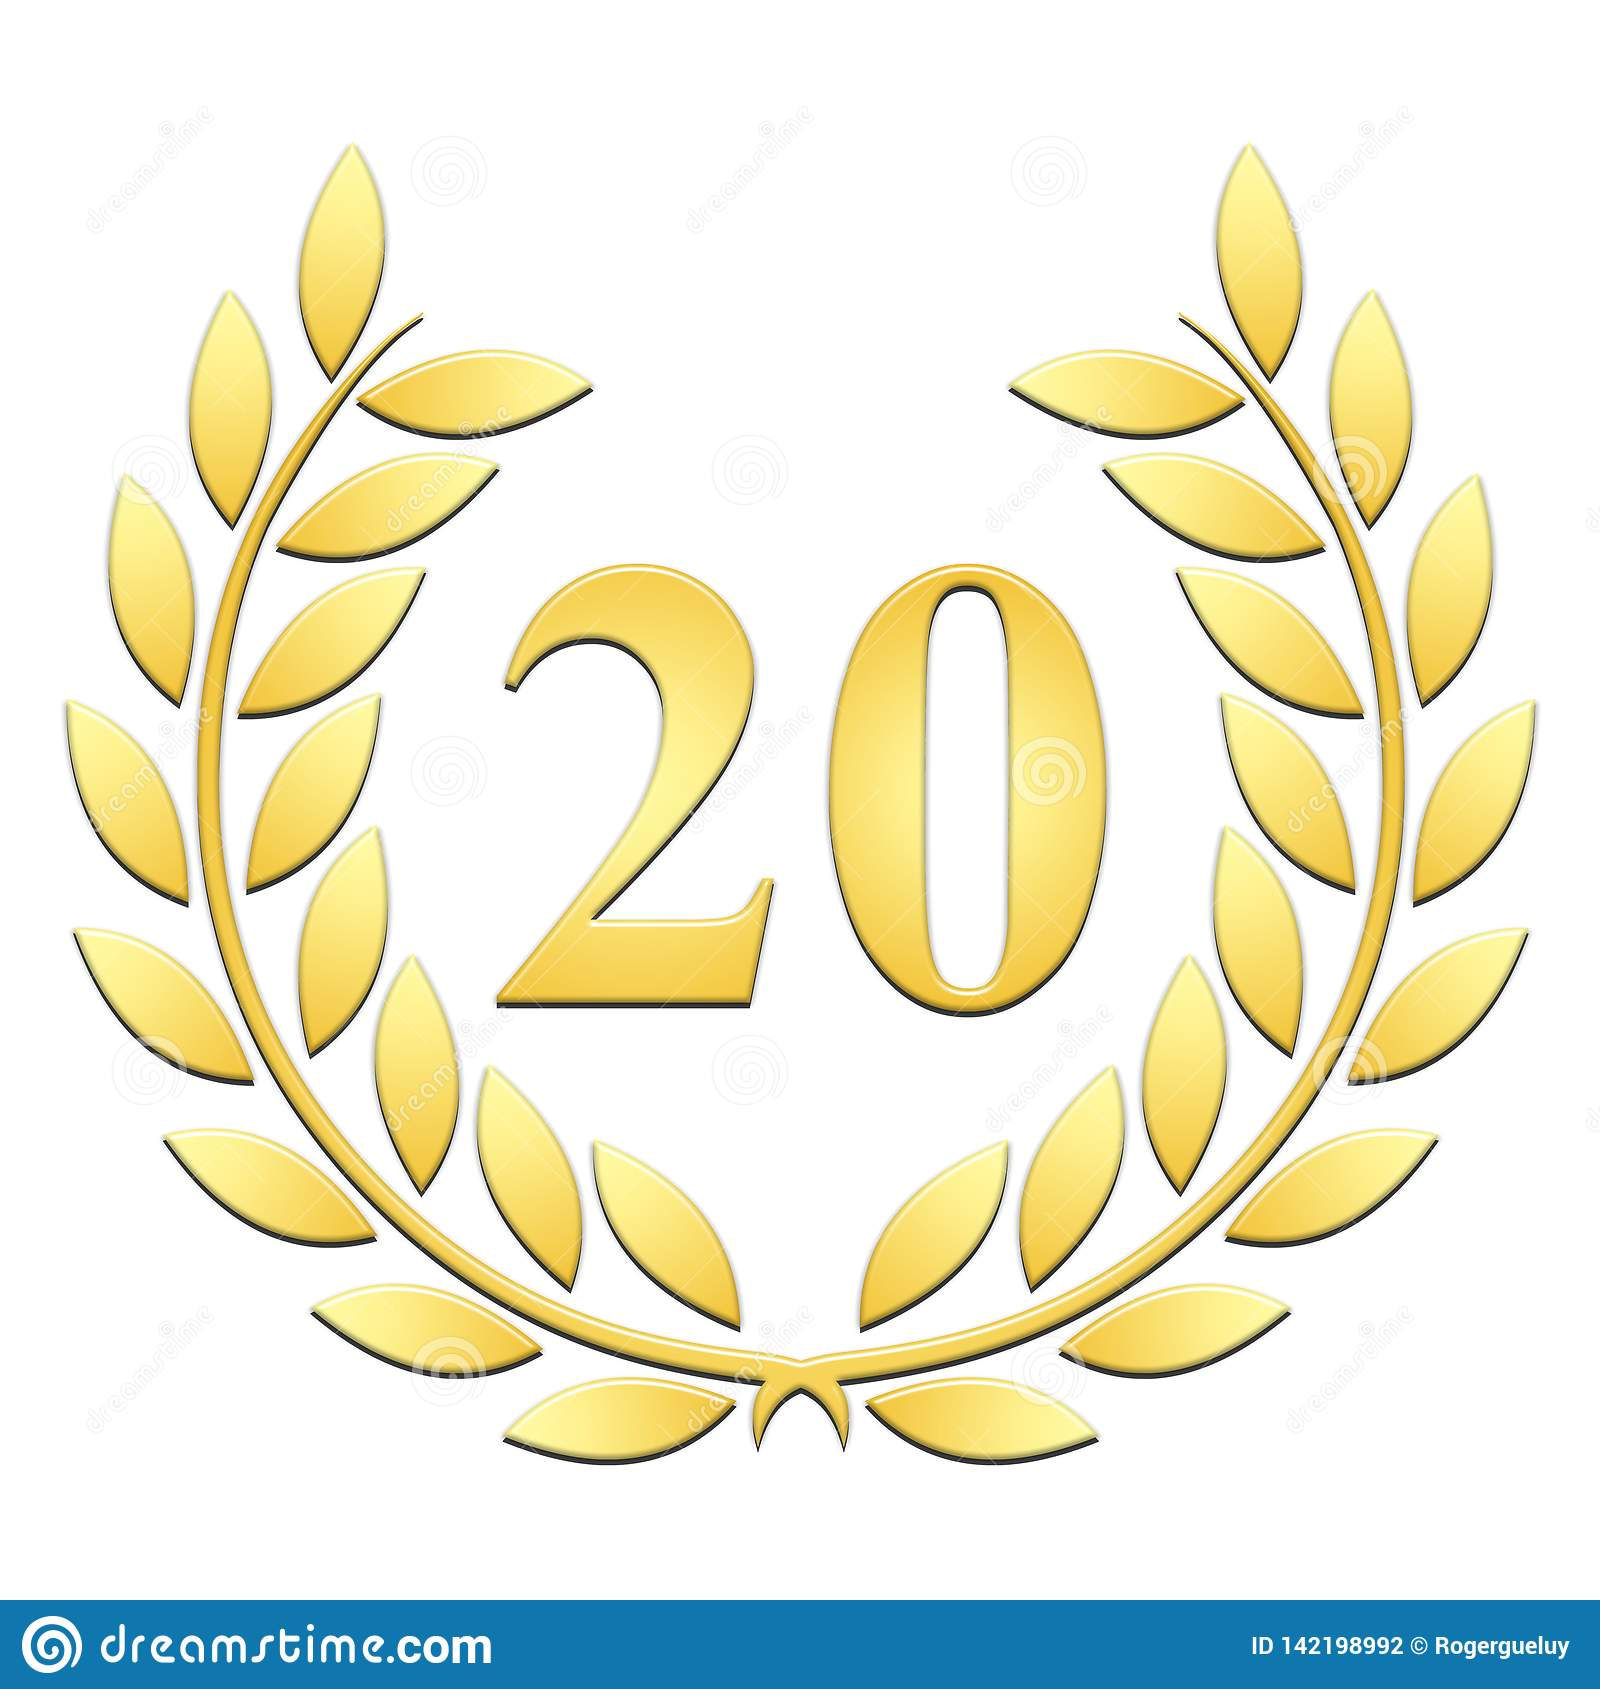 Laurel wreath Golden Laurel wreath for 20th anniversary on a white backgroundanniversary on a white background